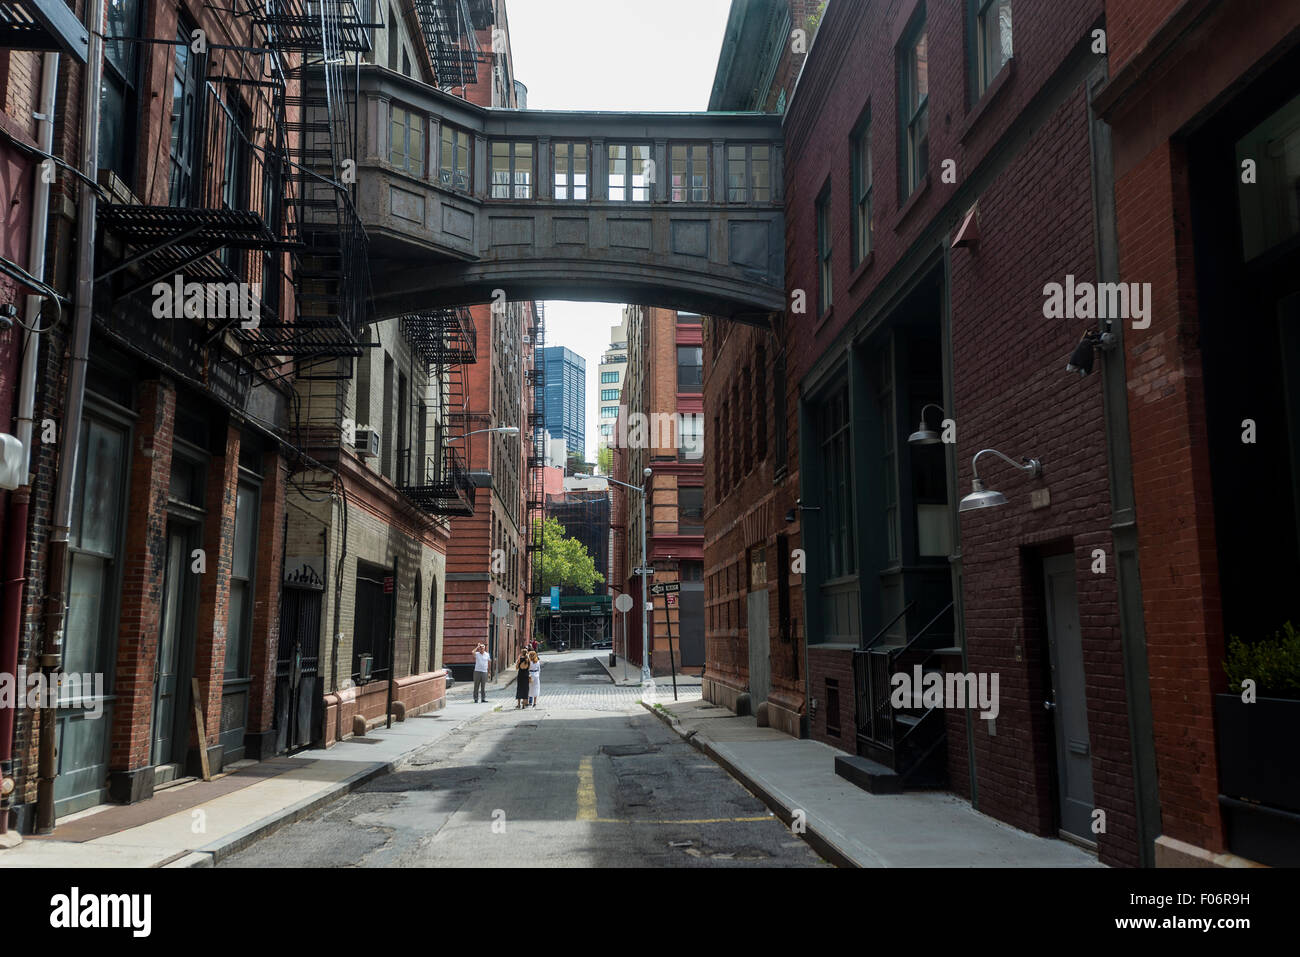 New York, NY - Grundnahrungsmittel Street mit der Skybridge in TriBeCa Neighorhood der unteren Manhattan © Stockbild